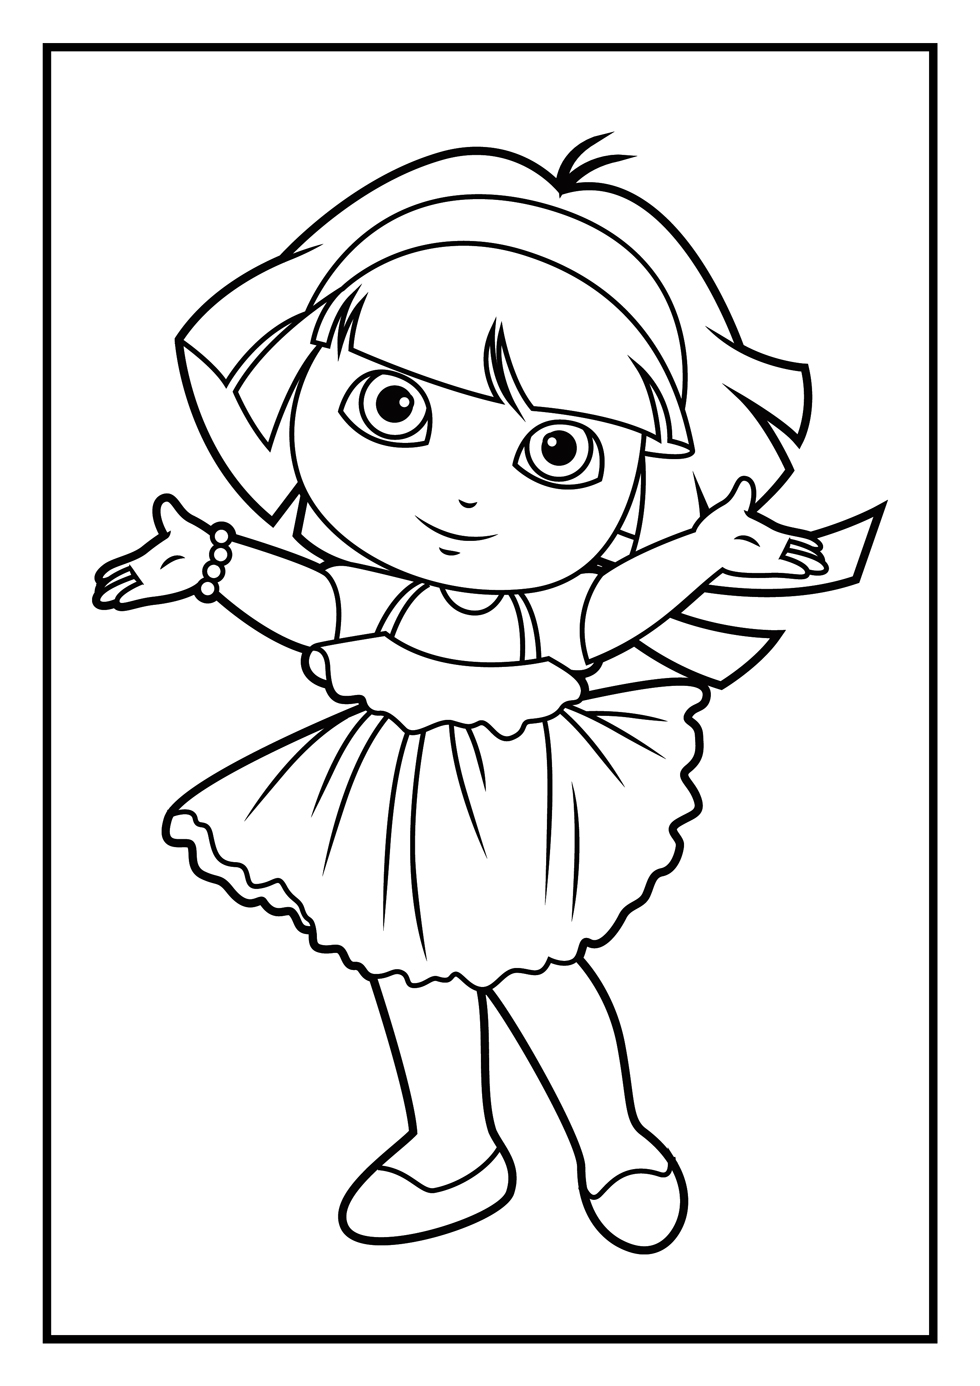 dora colouring pages dora coloring pages diego coloring pages pages colouring dora